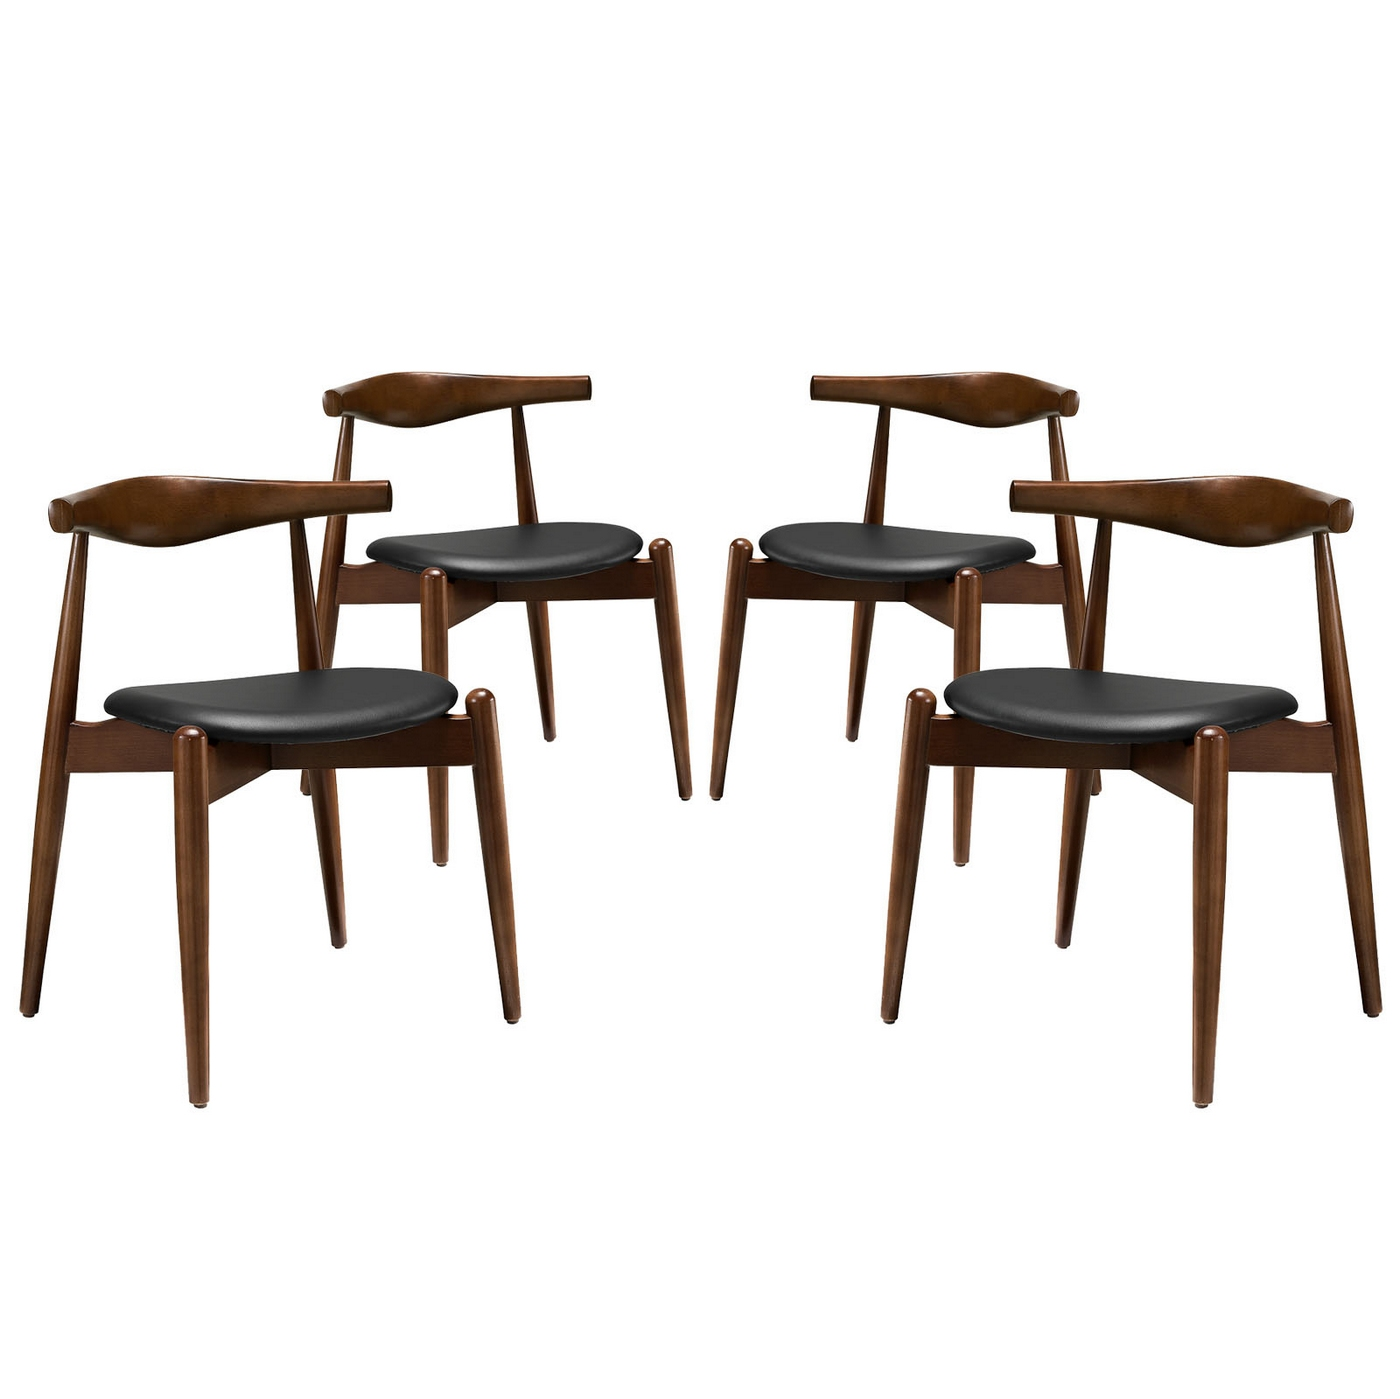 Wonderful image of  Wood Dining Side Chairs w/ Upholstered Seats Dark Walnut Black with #623F28 color and 1400x1399 pixels